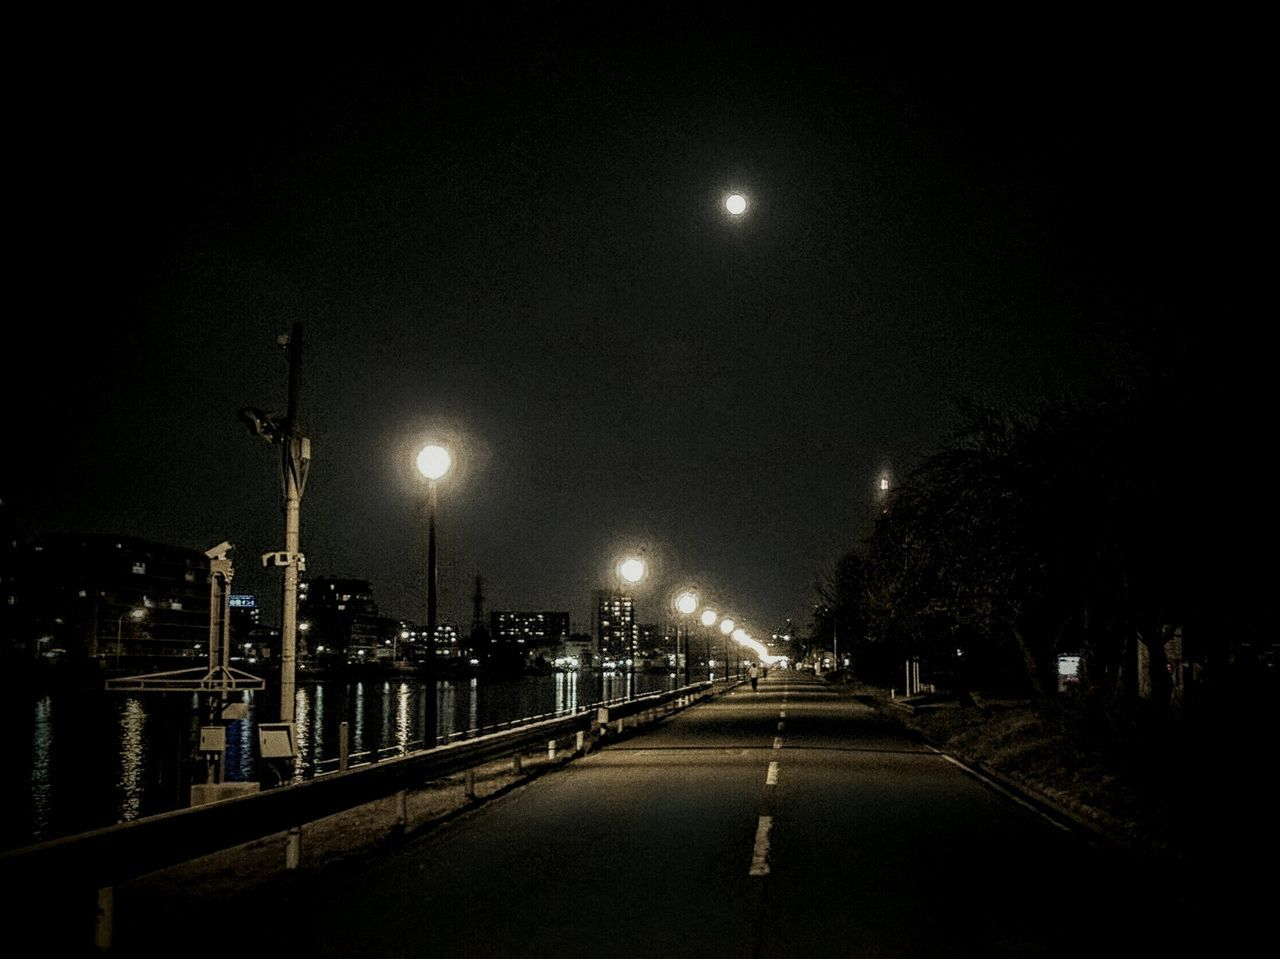 戸田漕艇場 Night Photography Night View Moon Light Silhouette_collection Scenery Toniht Night Jog